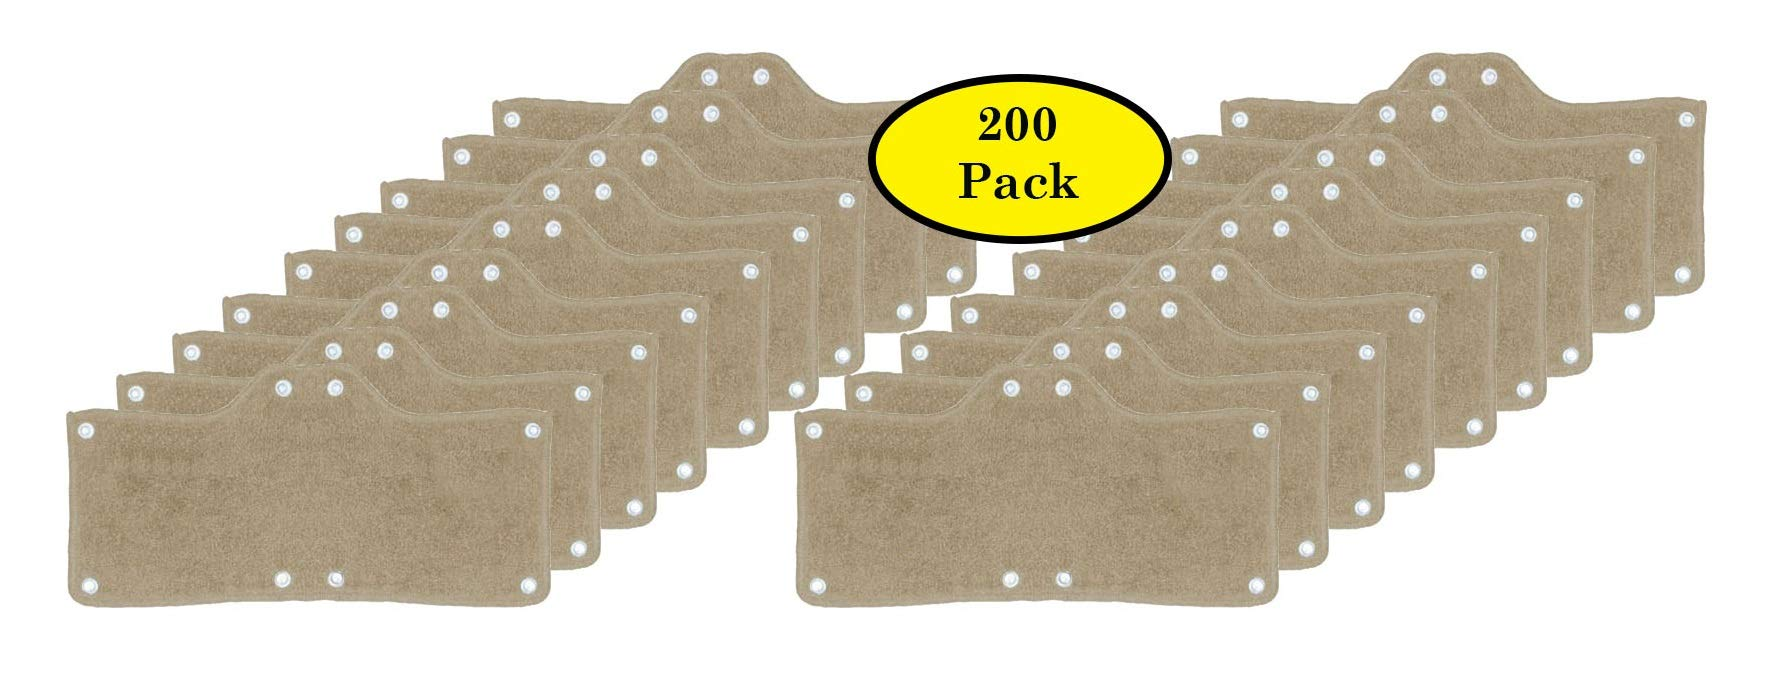 200 Pack Best Hard Hat Sweatband Beige Washable Snap On Sweat Band Liner Safety Accessories